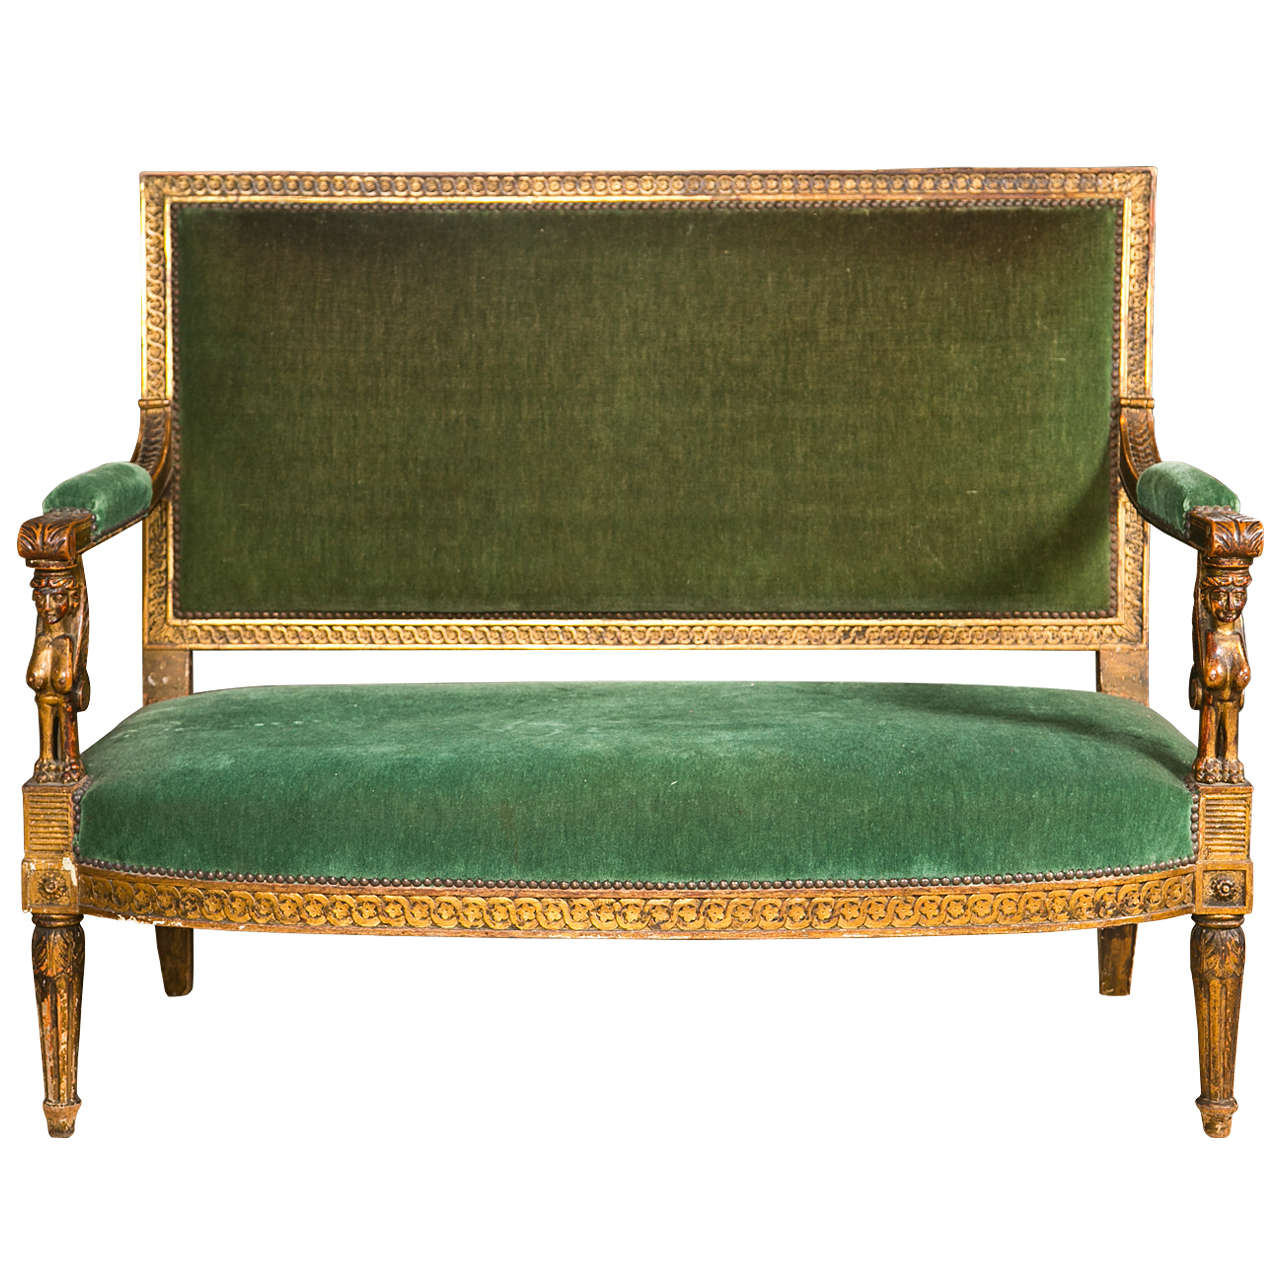 19th C Egyptian Revival Gilt Sofa At